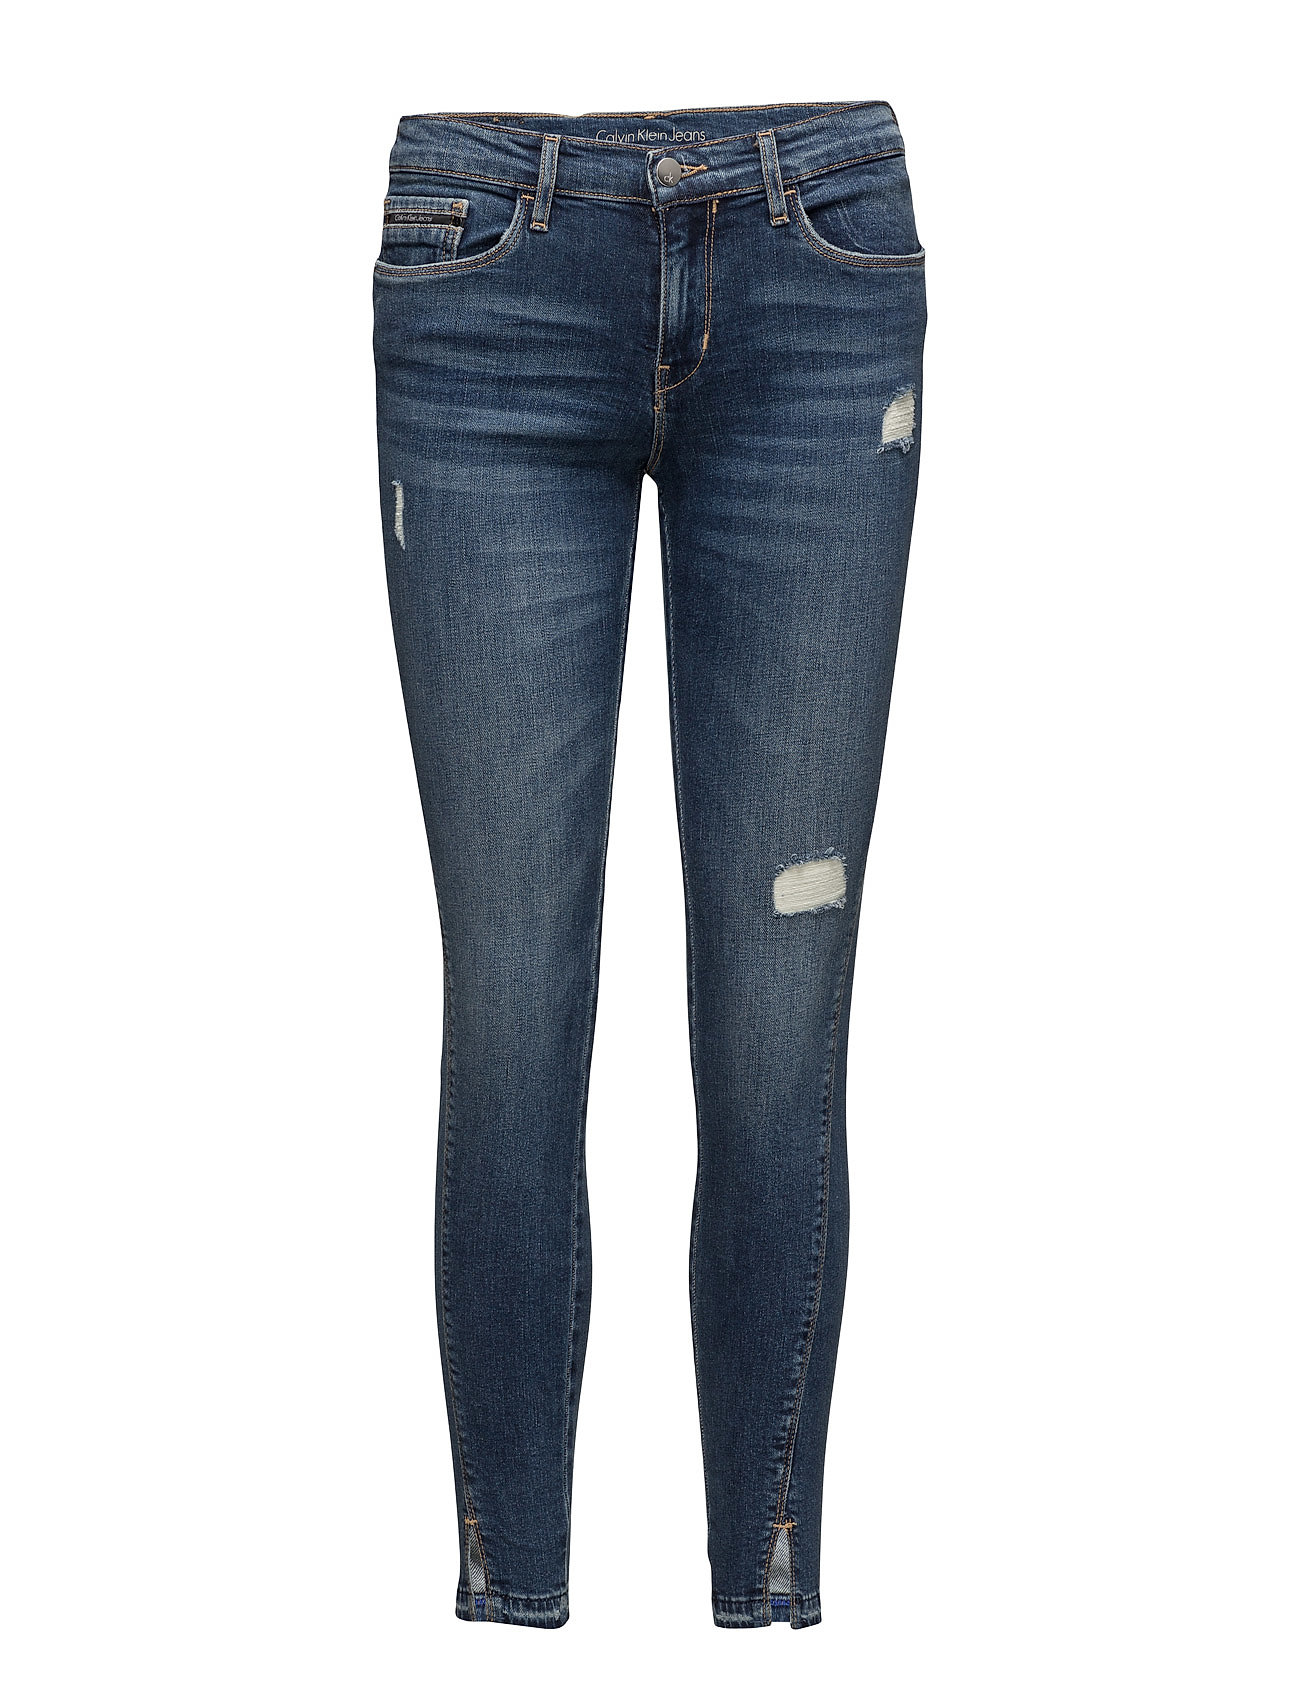 calvin klein jeans Mr skinny twisted an fra boozt.com dk